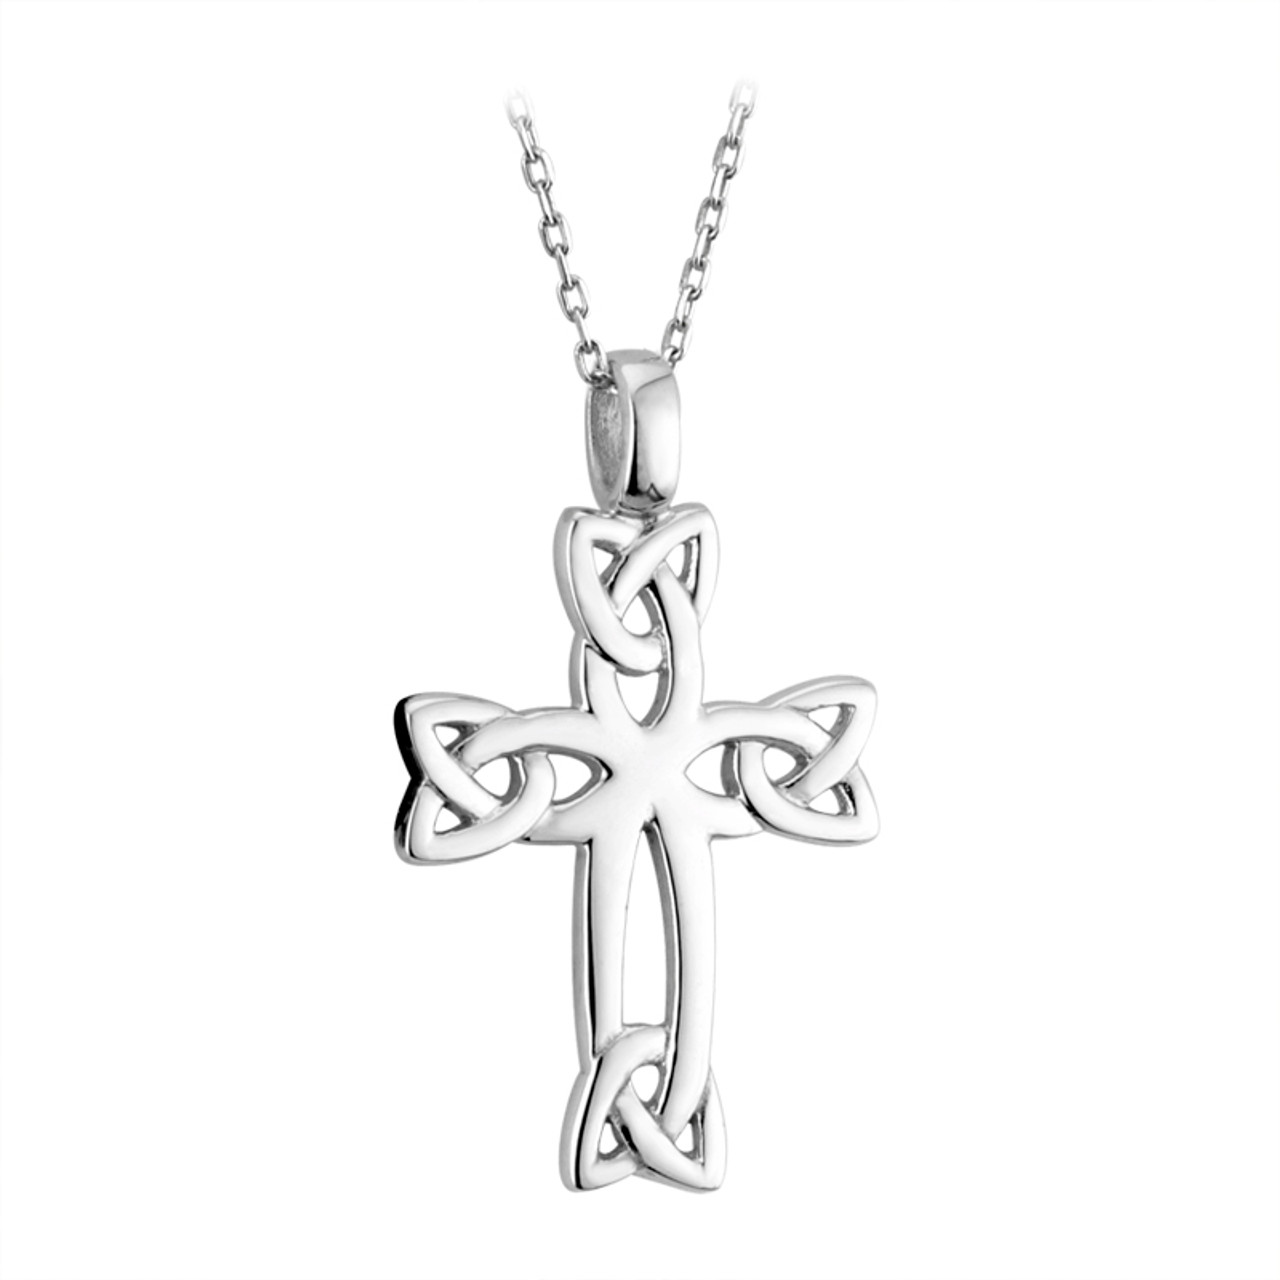 crystal r celtic dublin irish a cross shop pendant authentic c silver pendants green sterling mccormack jewellery with